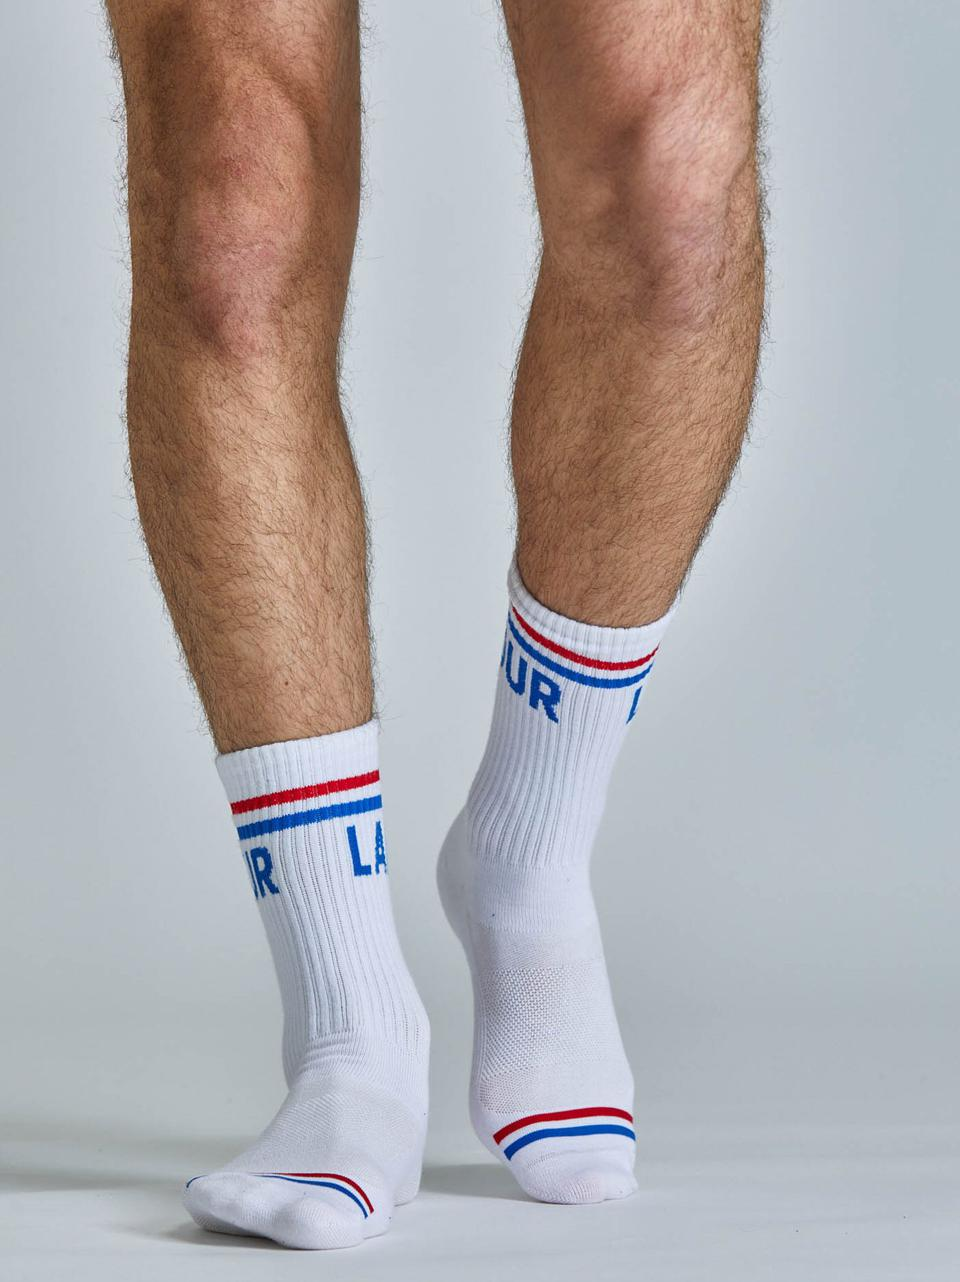 The all-new Crew socks from Fourlaps